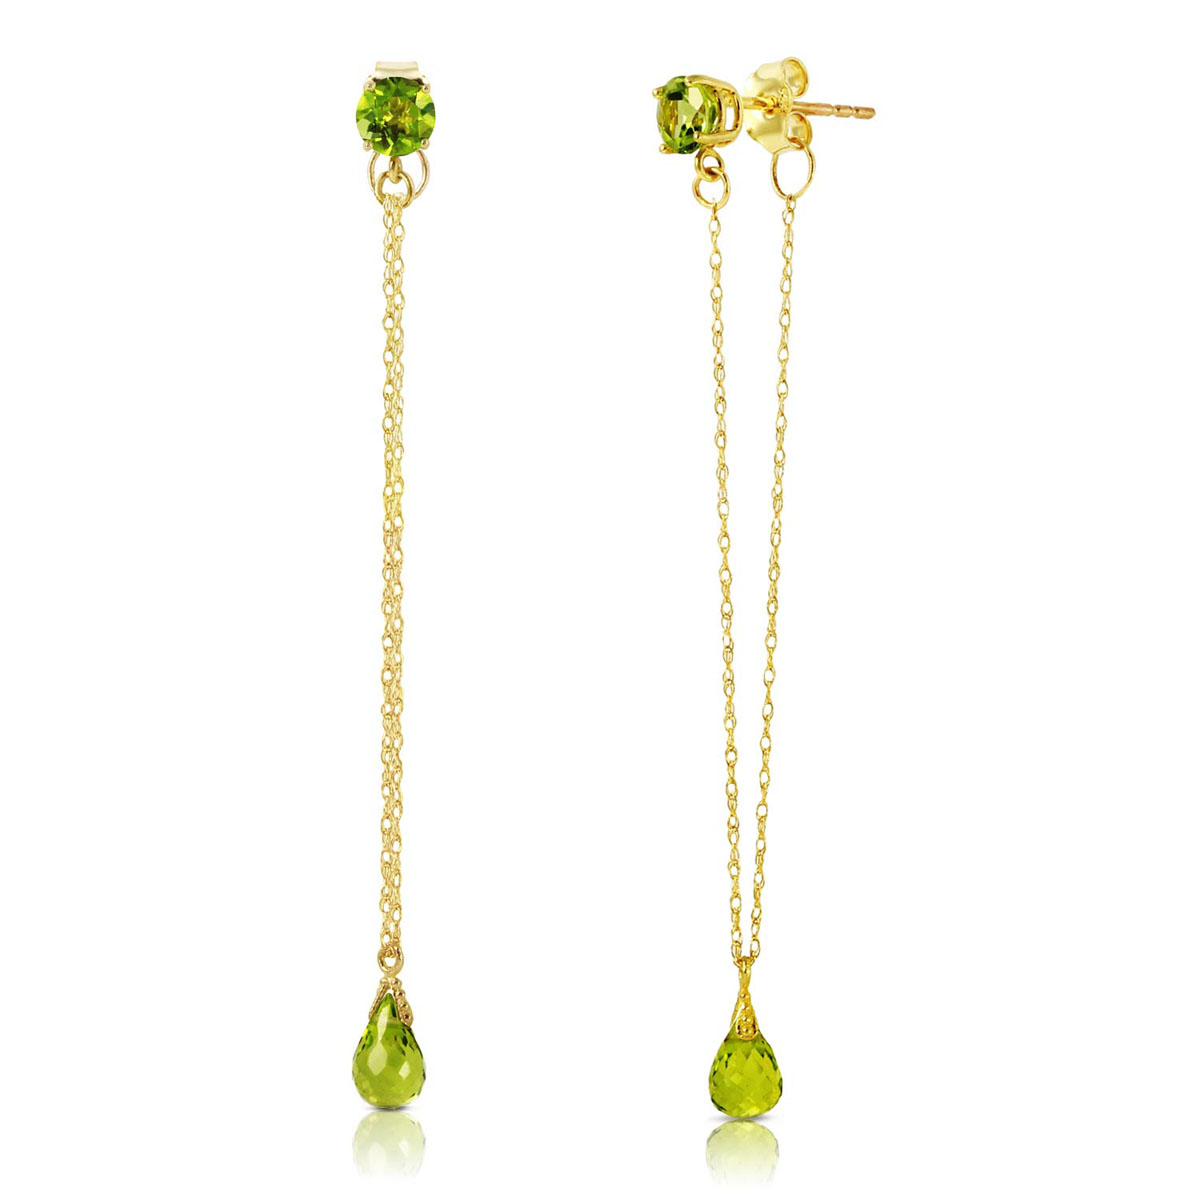 Peridot Monte Carlo Drop Earrings 3.15 ctw in 9ct Gold